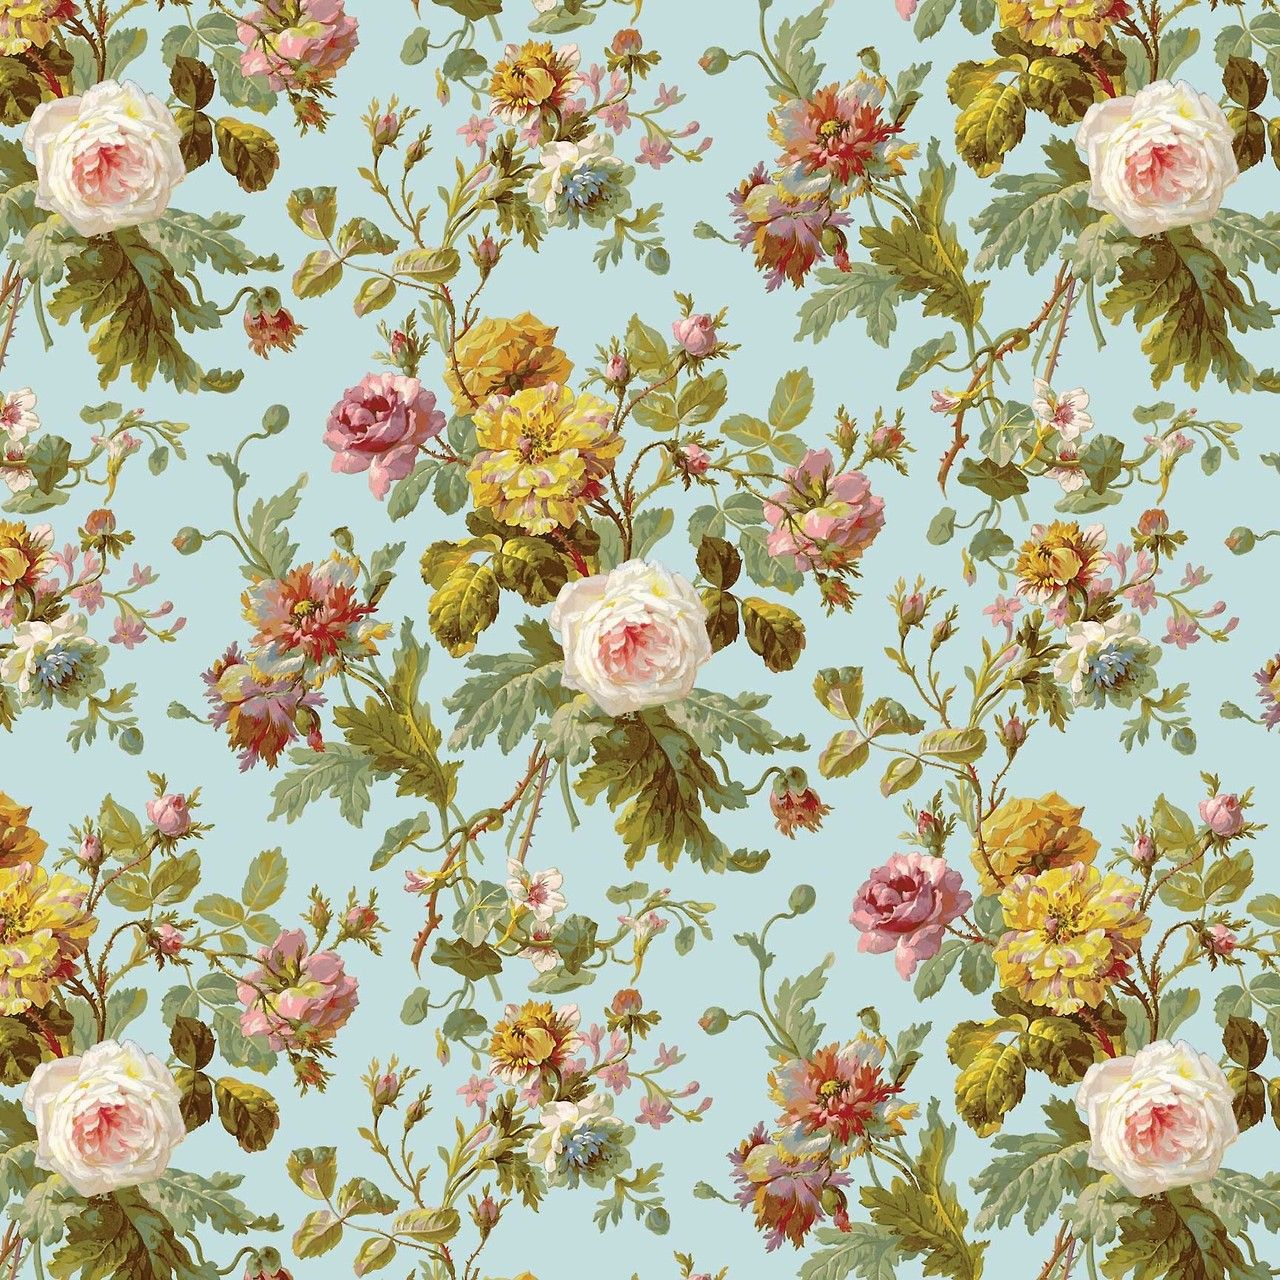 Vintage Wallpaper Tumblr Vintage Floral Wallpaper Pattern Tumblr